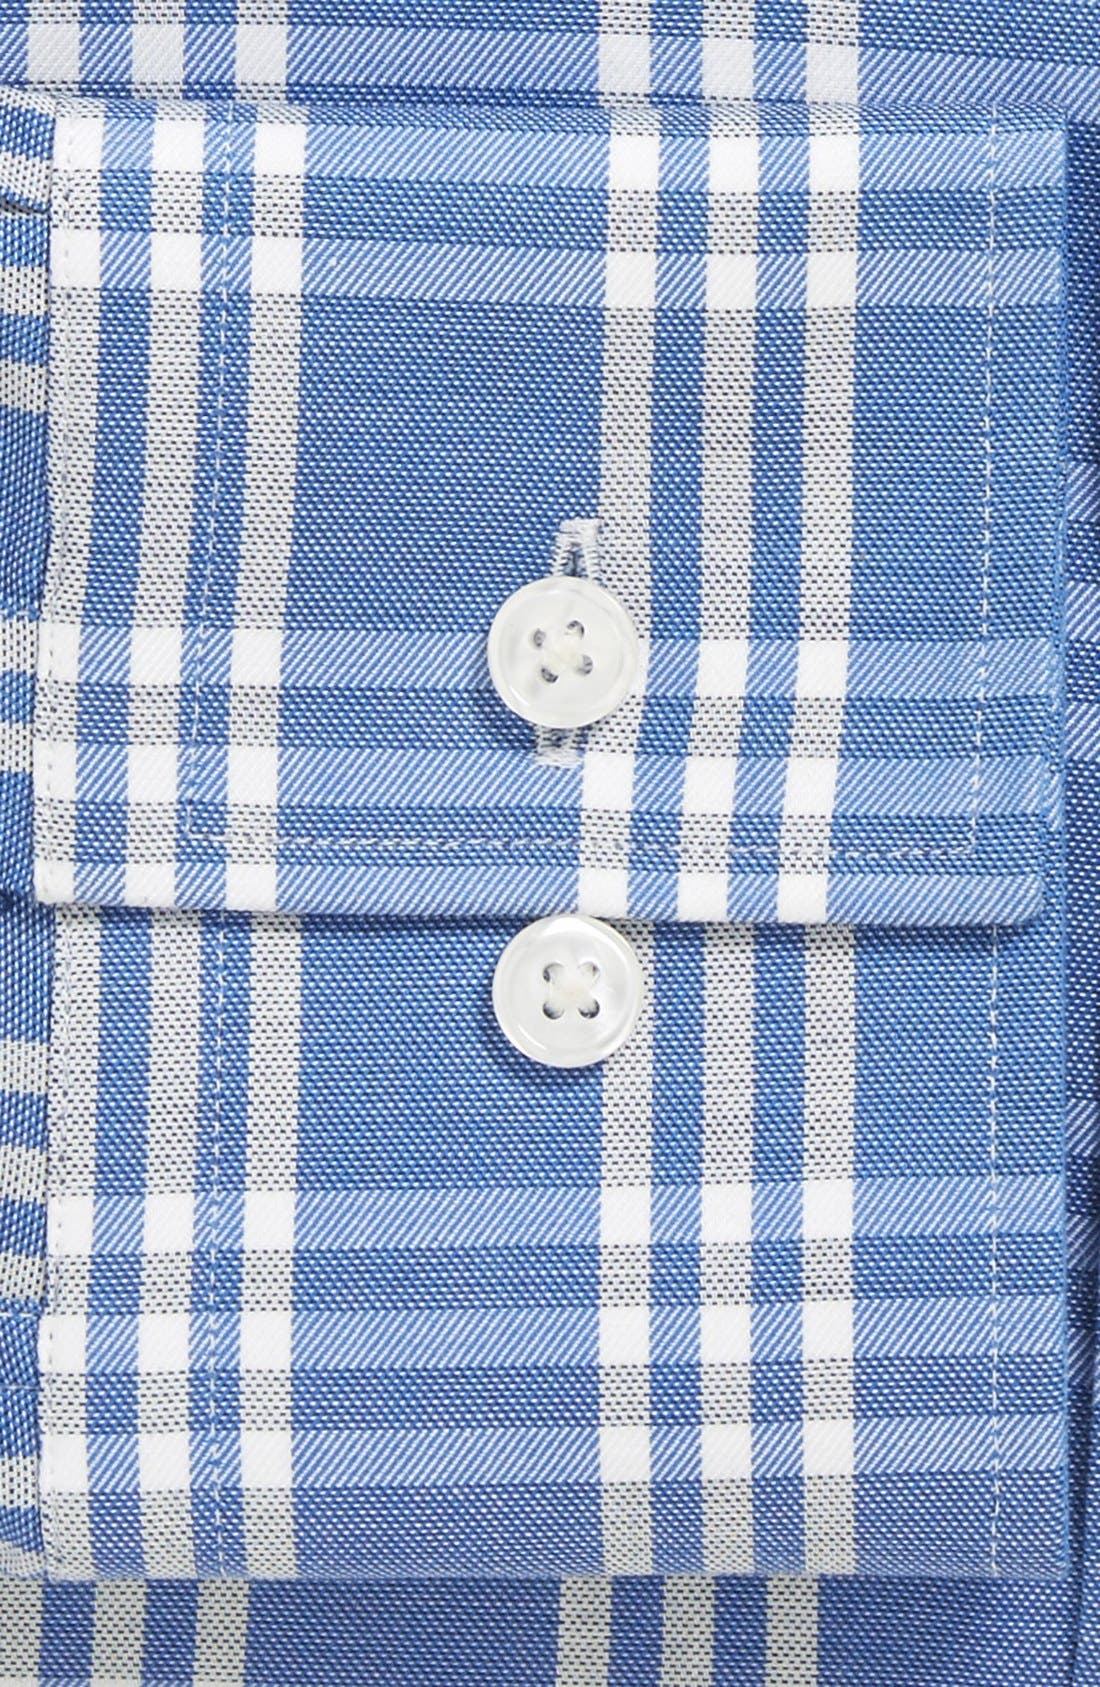 Alternate Image 2  - BOSS HUGO BOSS 'Jason' Slim Fit Check Dress Shirt